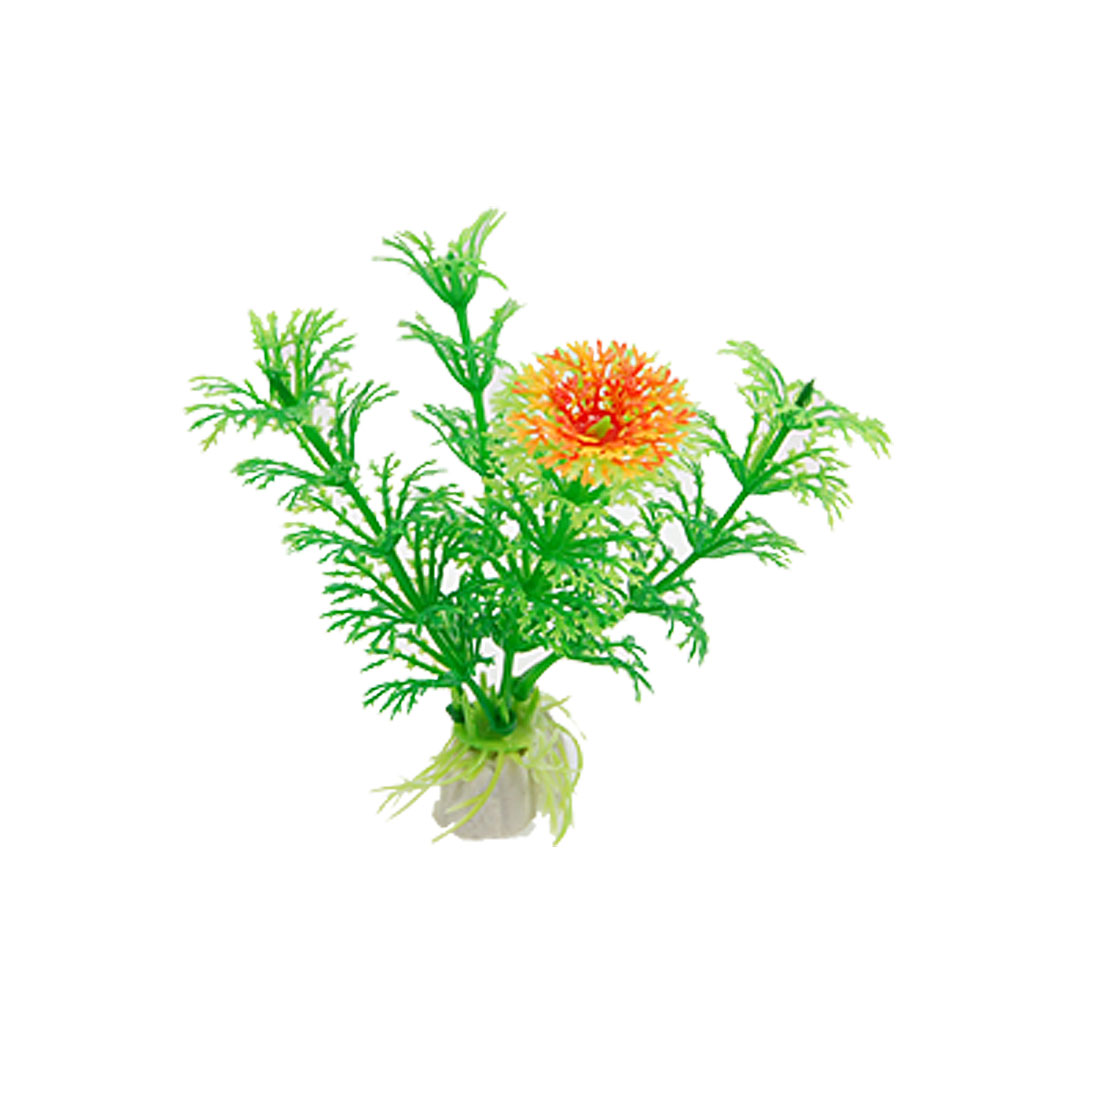 Aquarium 10 Pcs Plastic Orange Red Flower Green Plants Decor